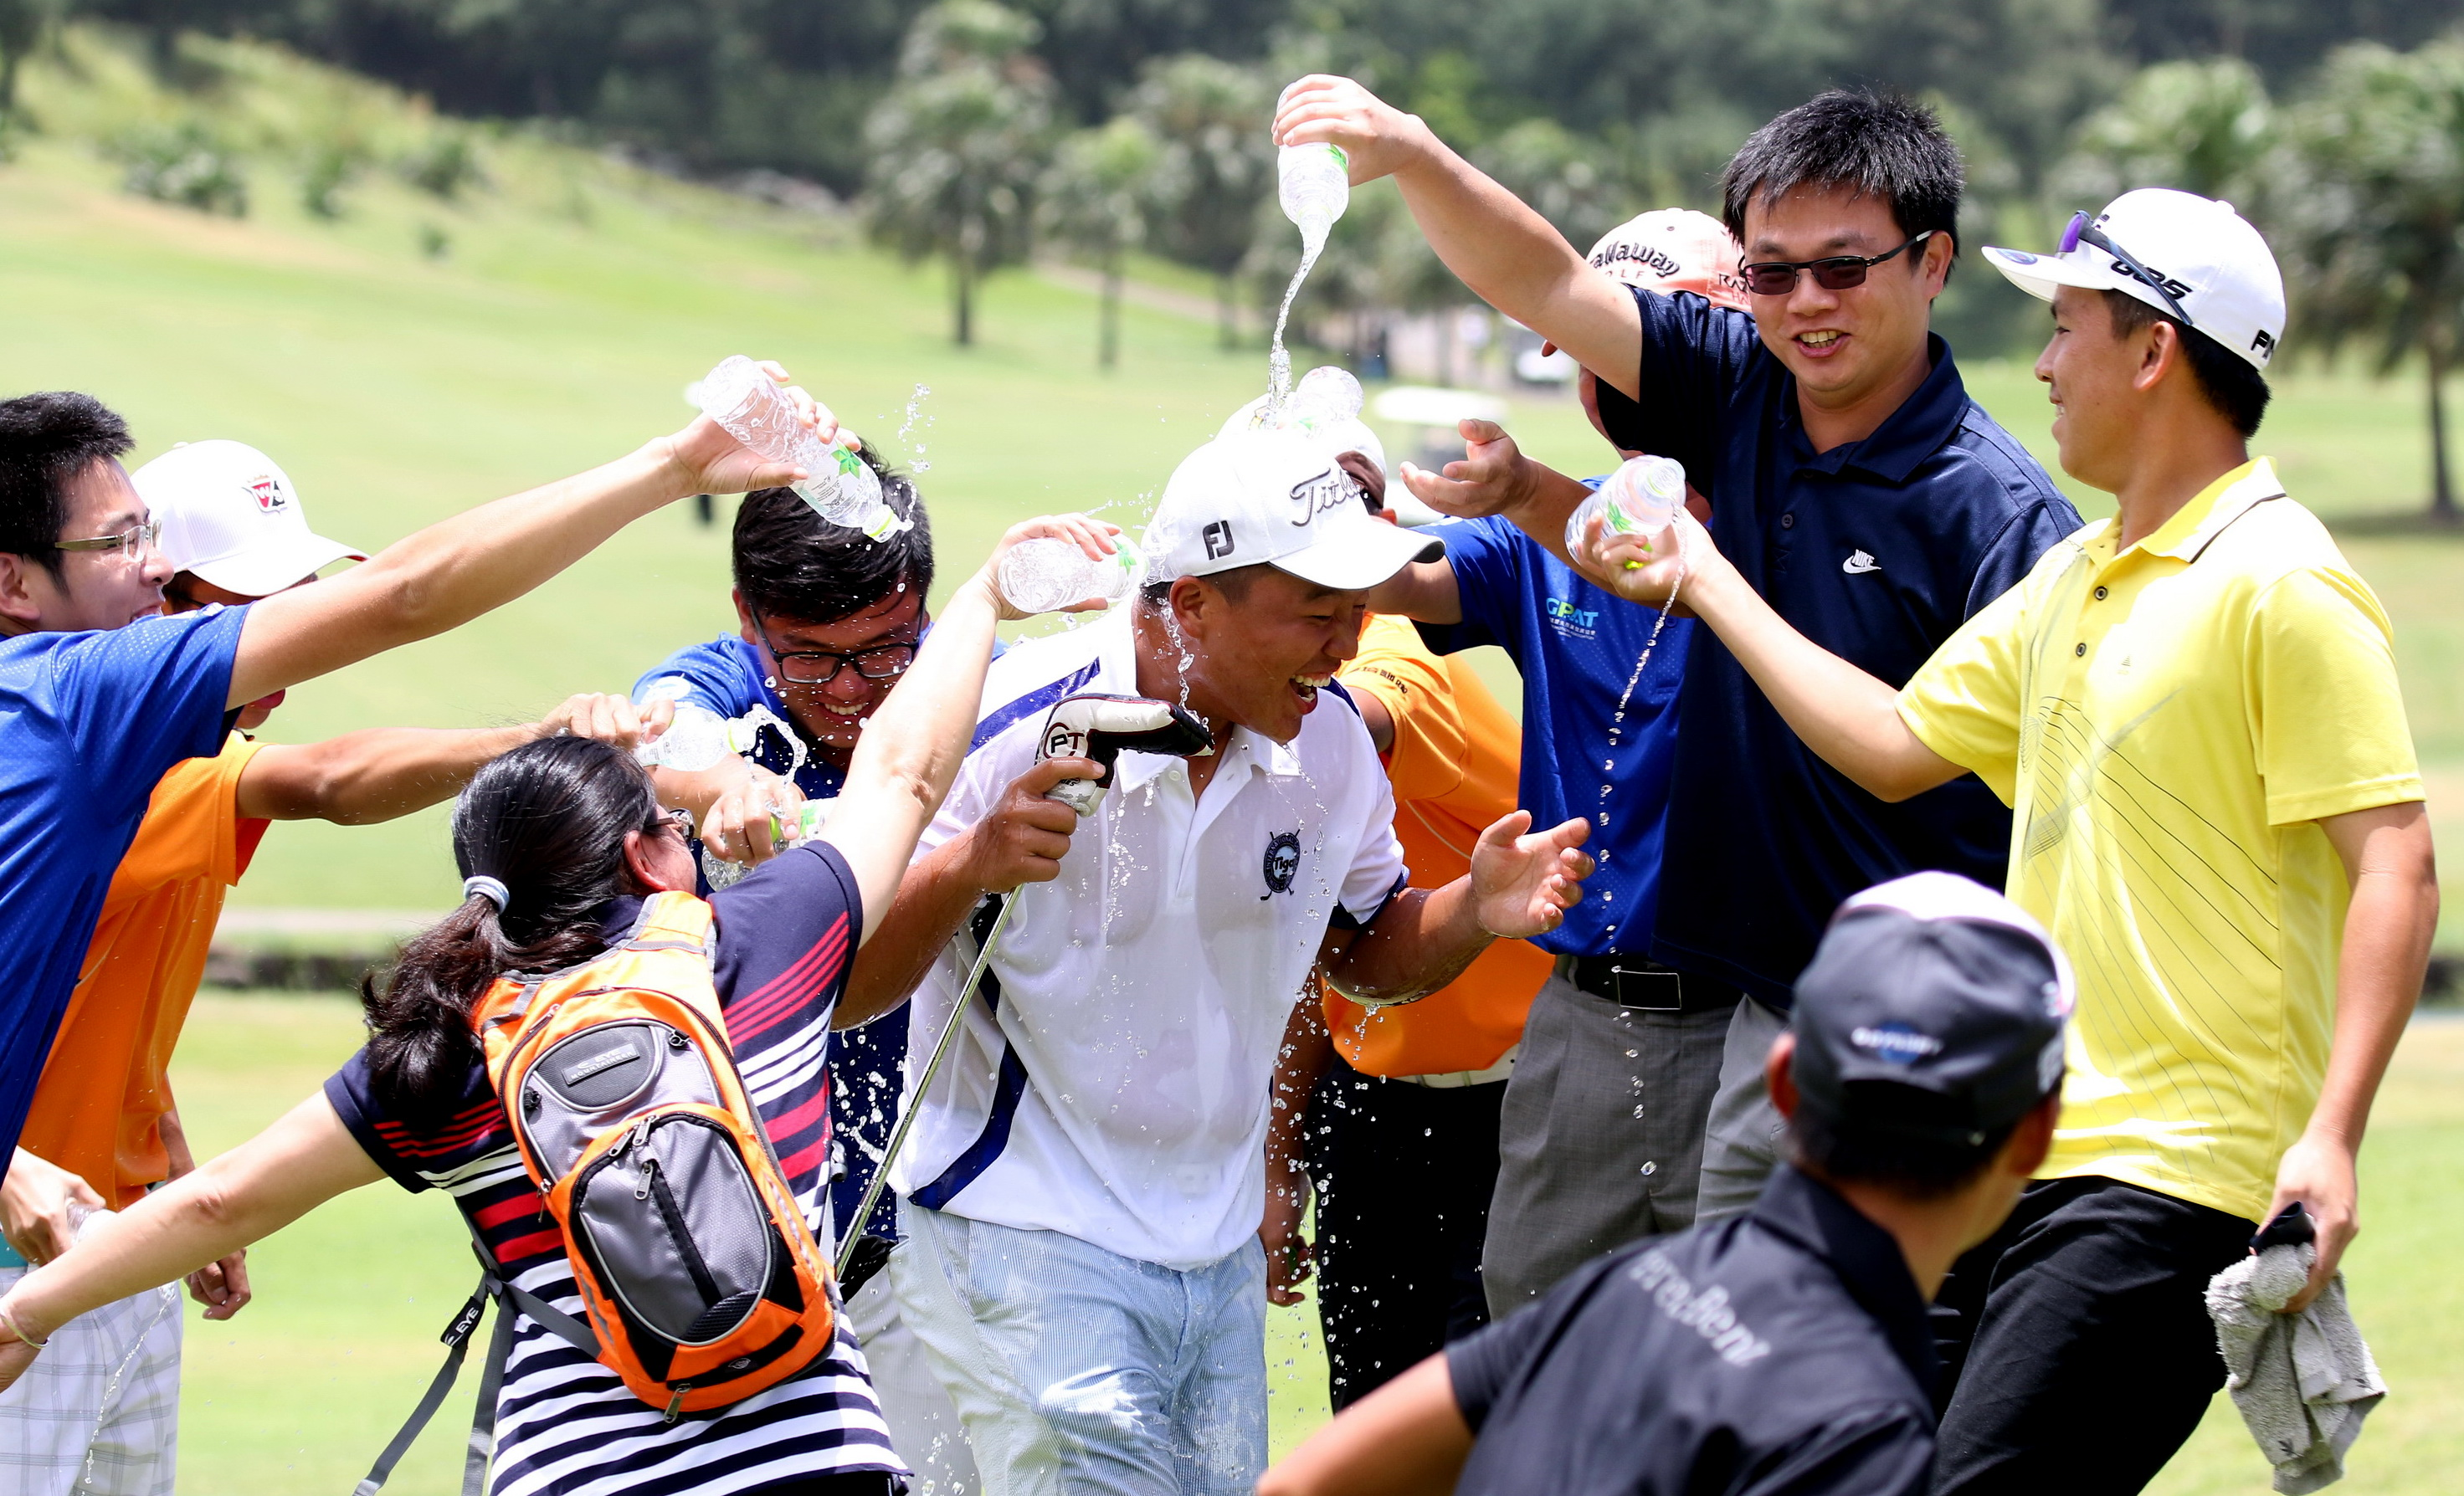 Simon Lin won the 2015 Taiwan Junior Open